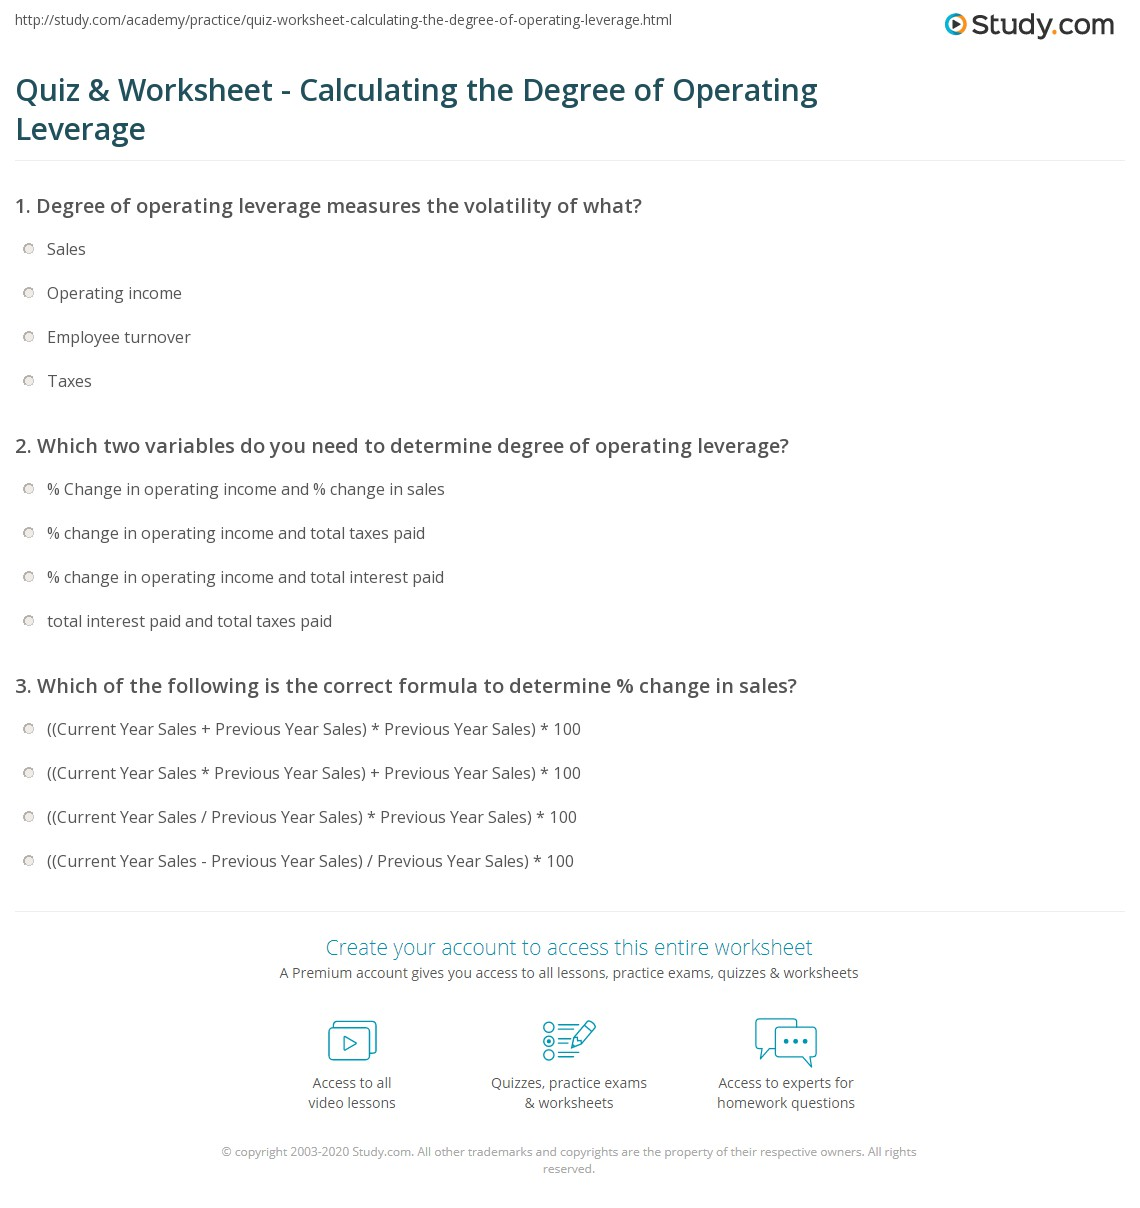 How to calculate the degree 66